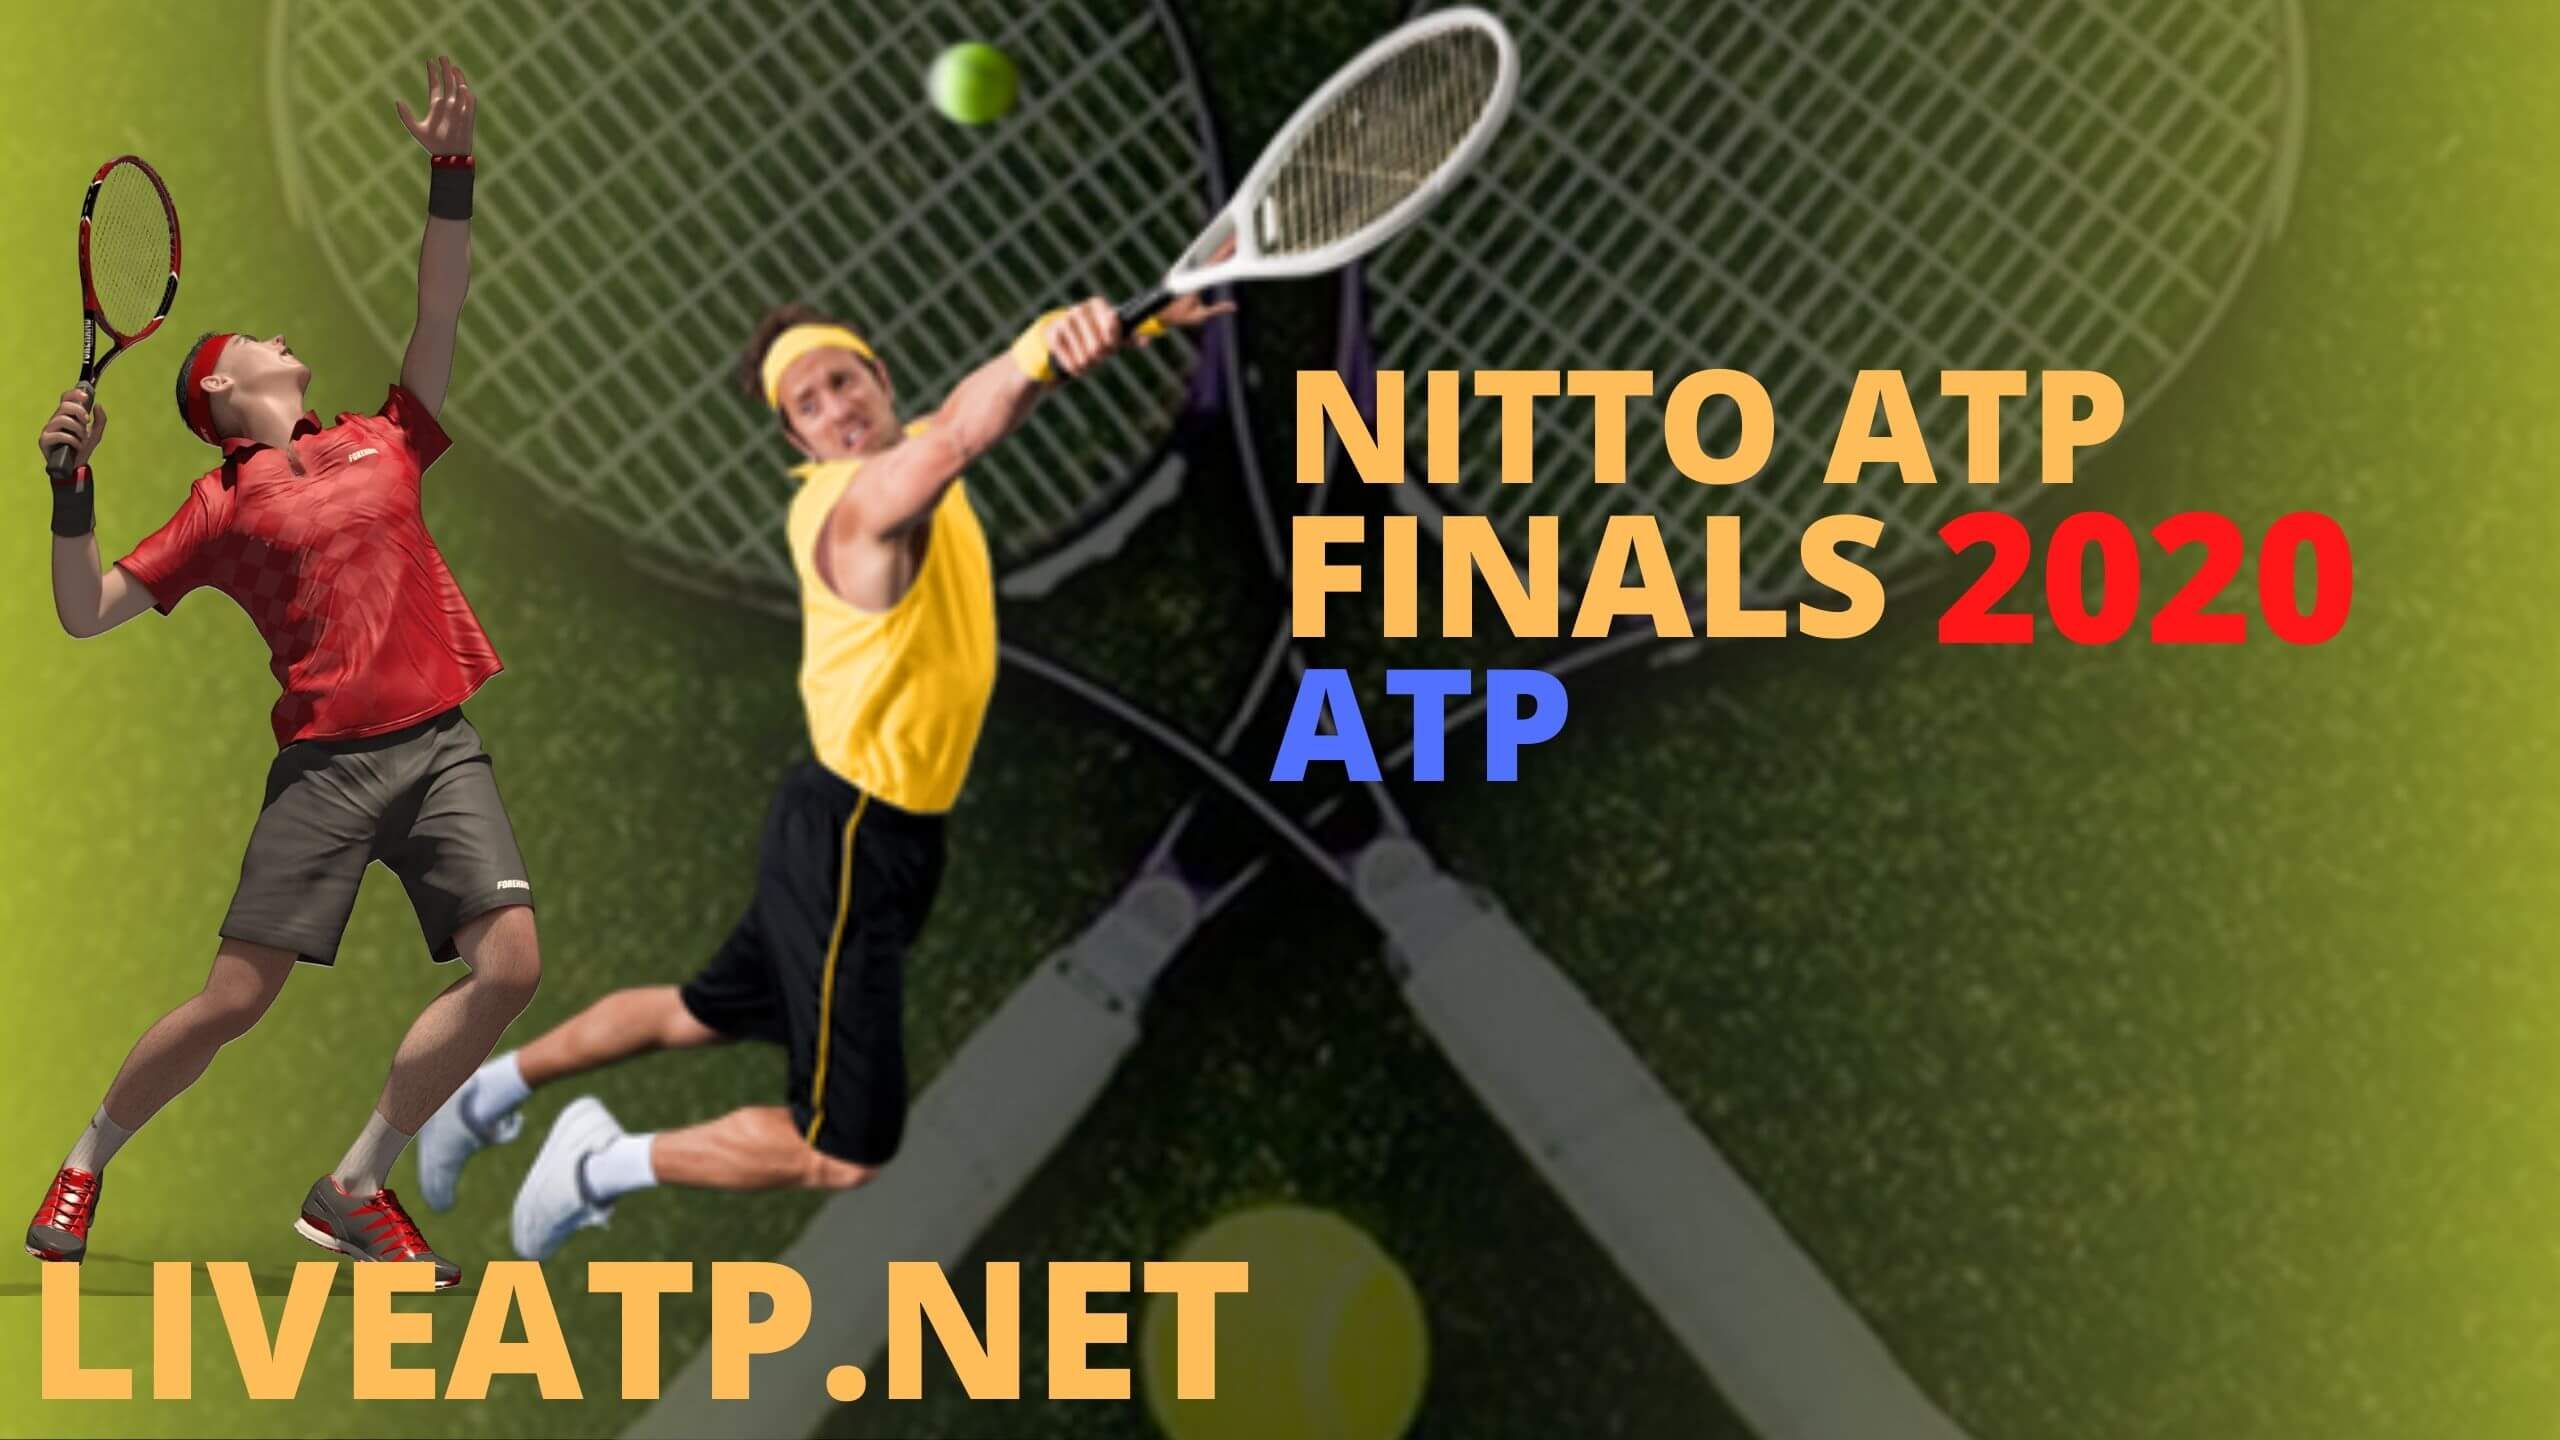 Nitto ATP Finals Live Stream 2020 |  Day 6